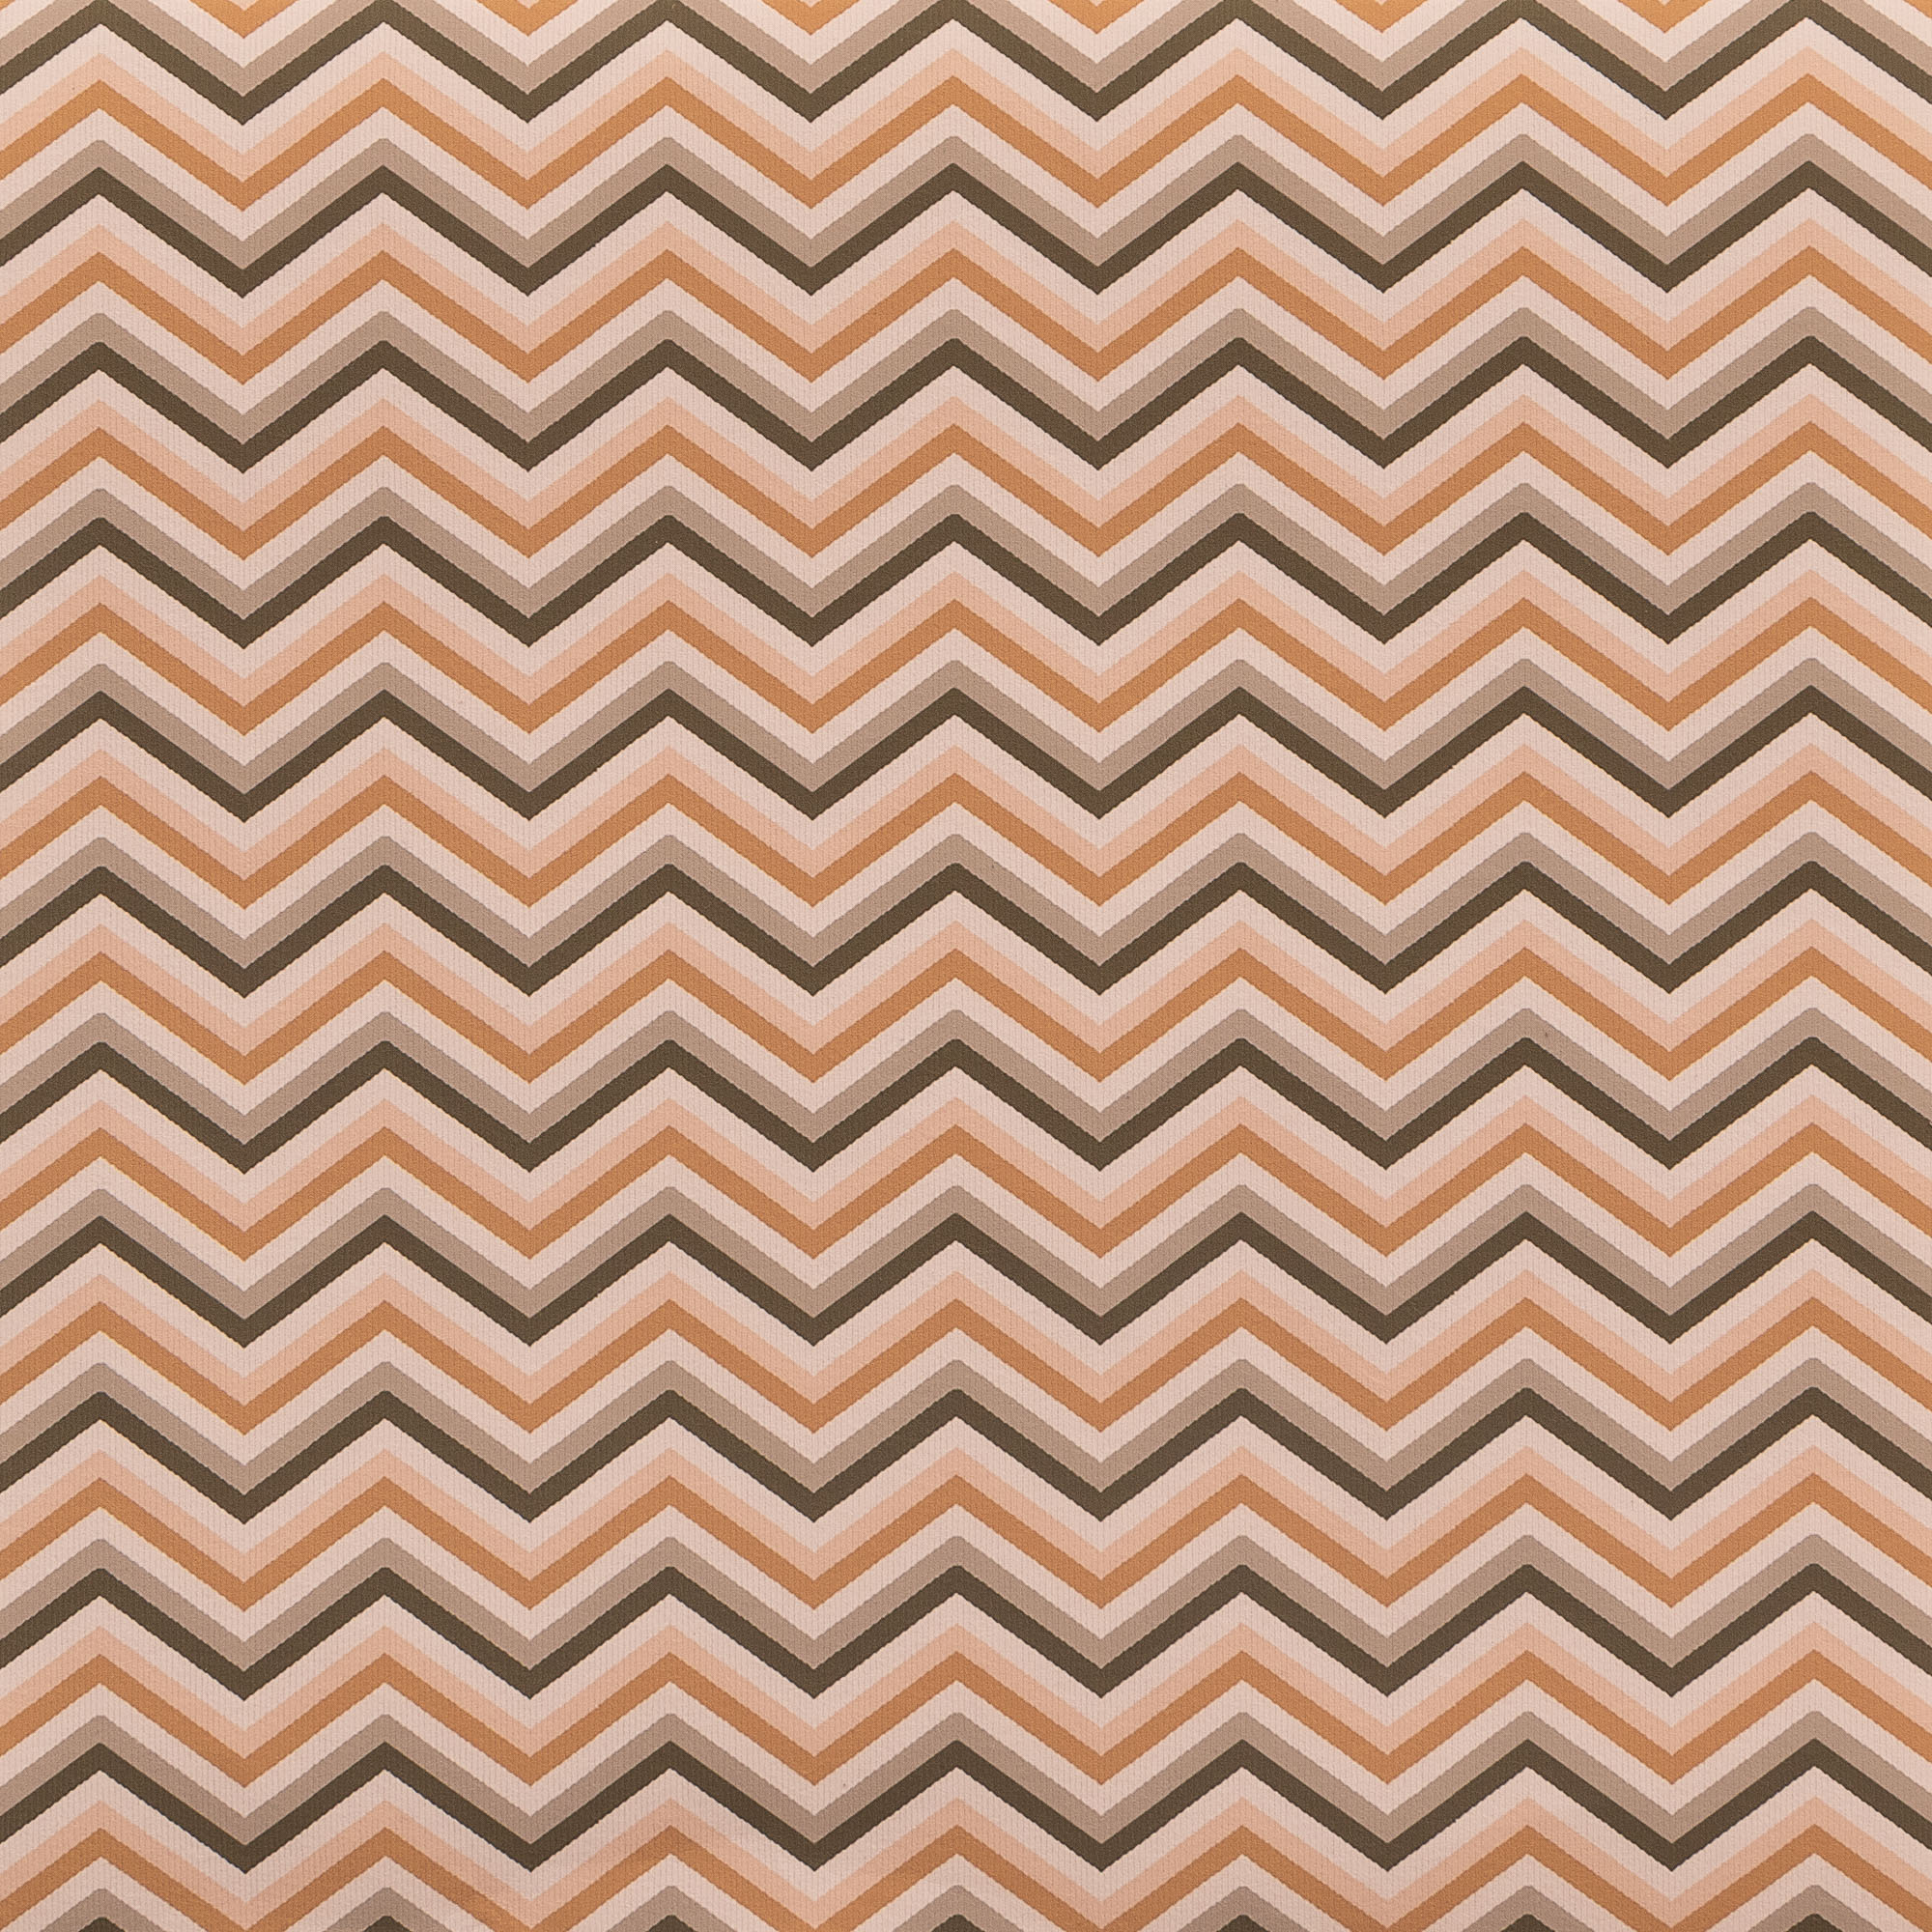 Suave Chevrons - Wallpaper